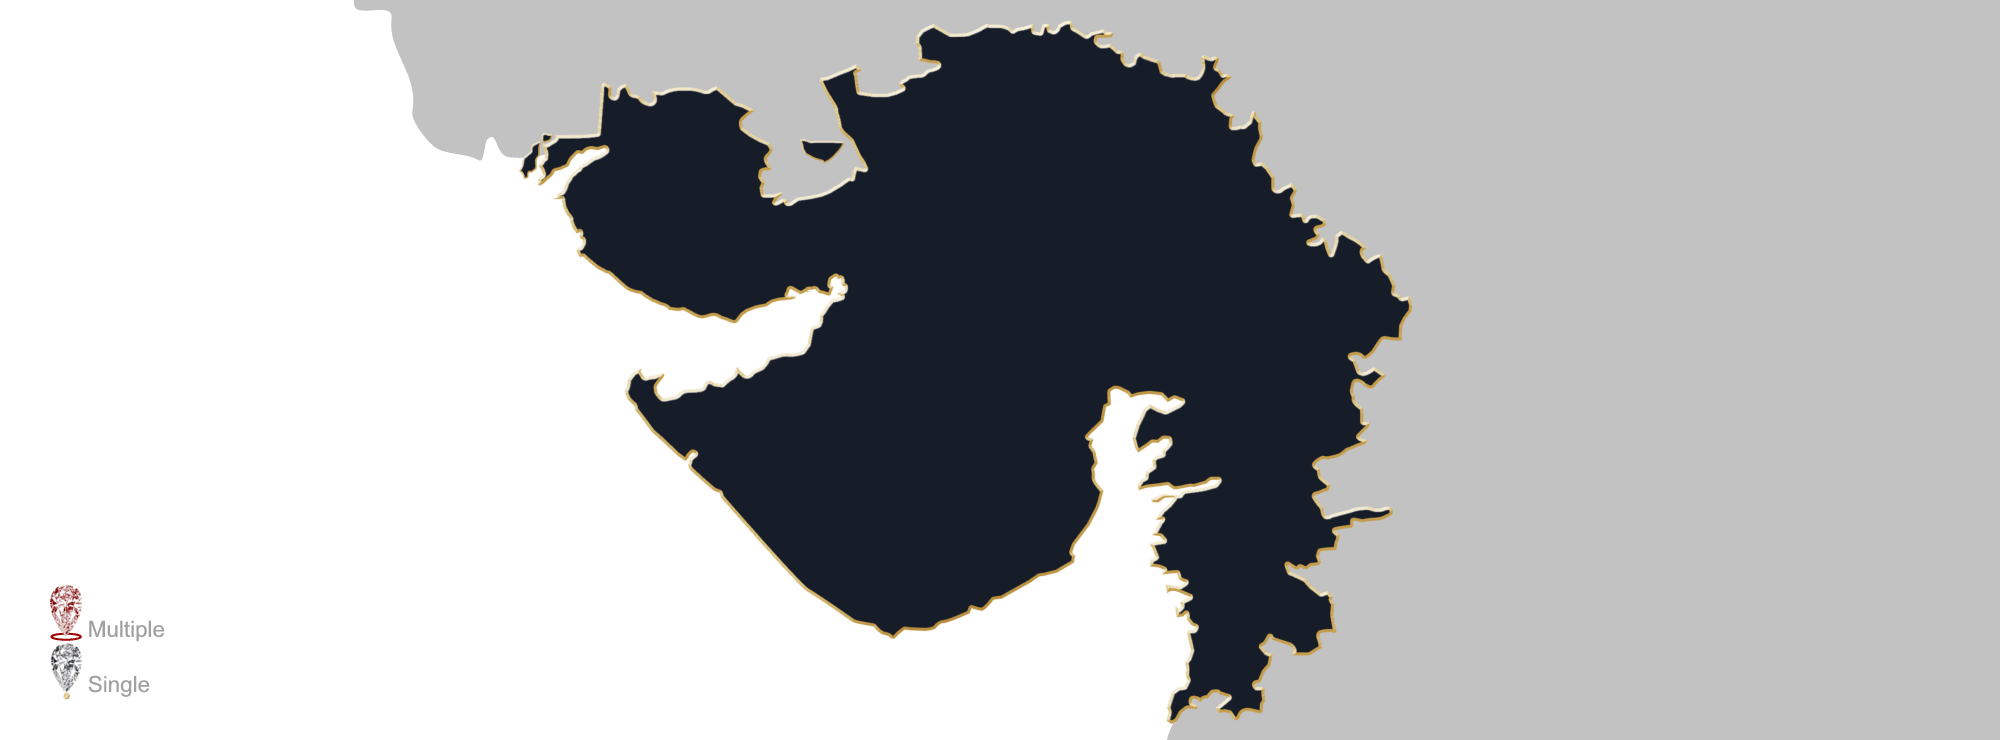 Map showing the location of jewellery valuers in Gujarat